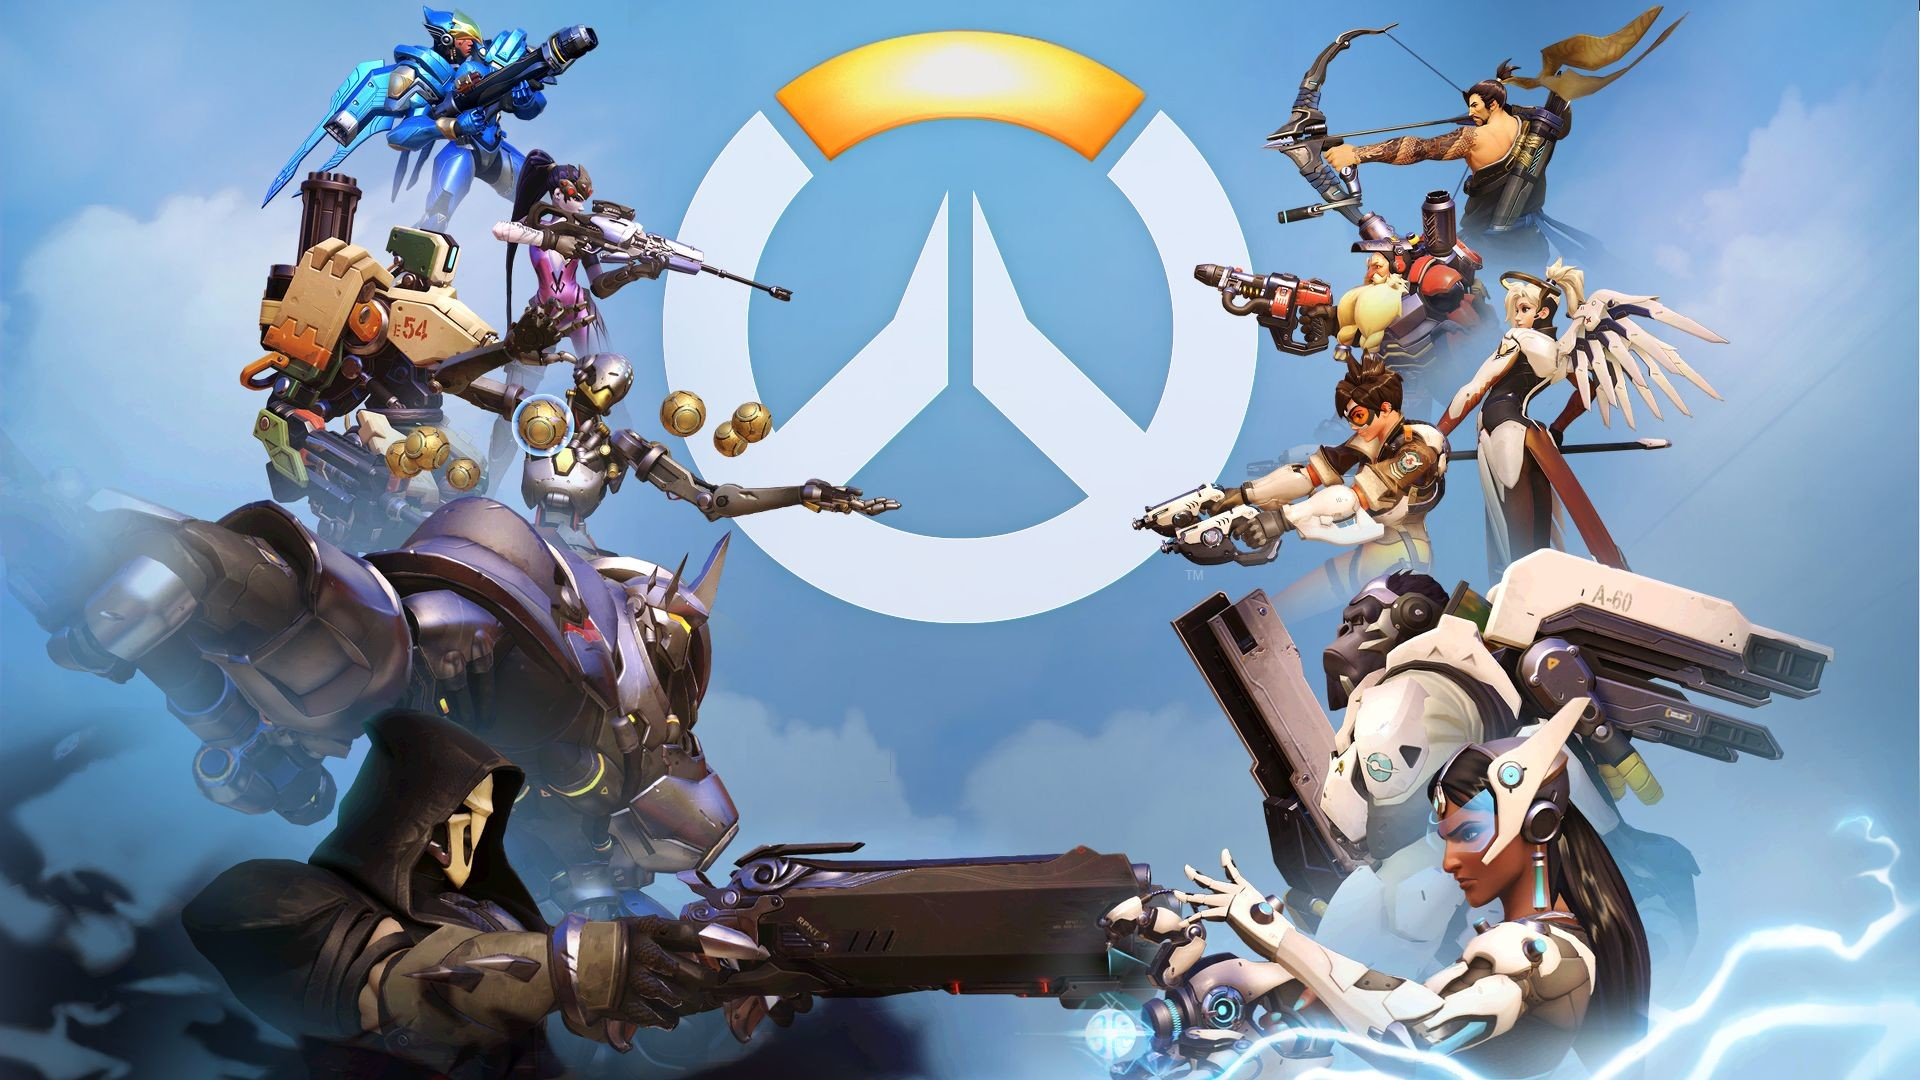 overwatch game wallpaper – 1080 x 1920 HD Backgrounds, High Definition  wallpapers for Desktop,